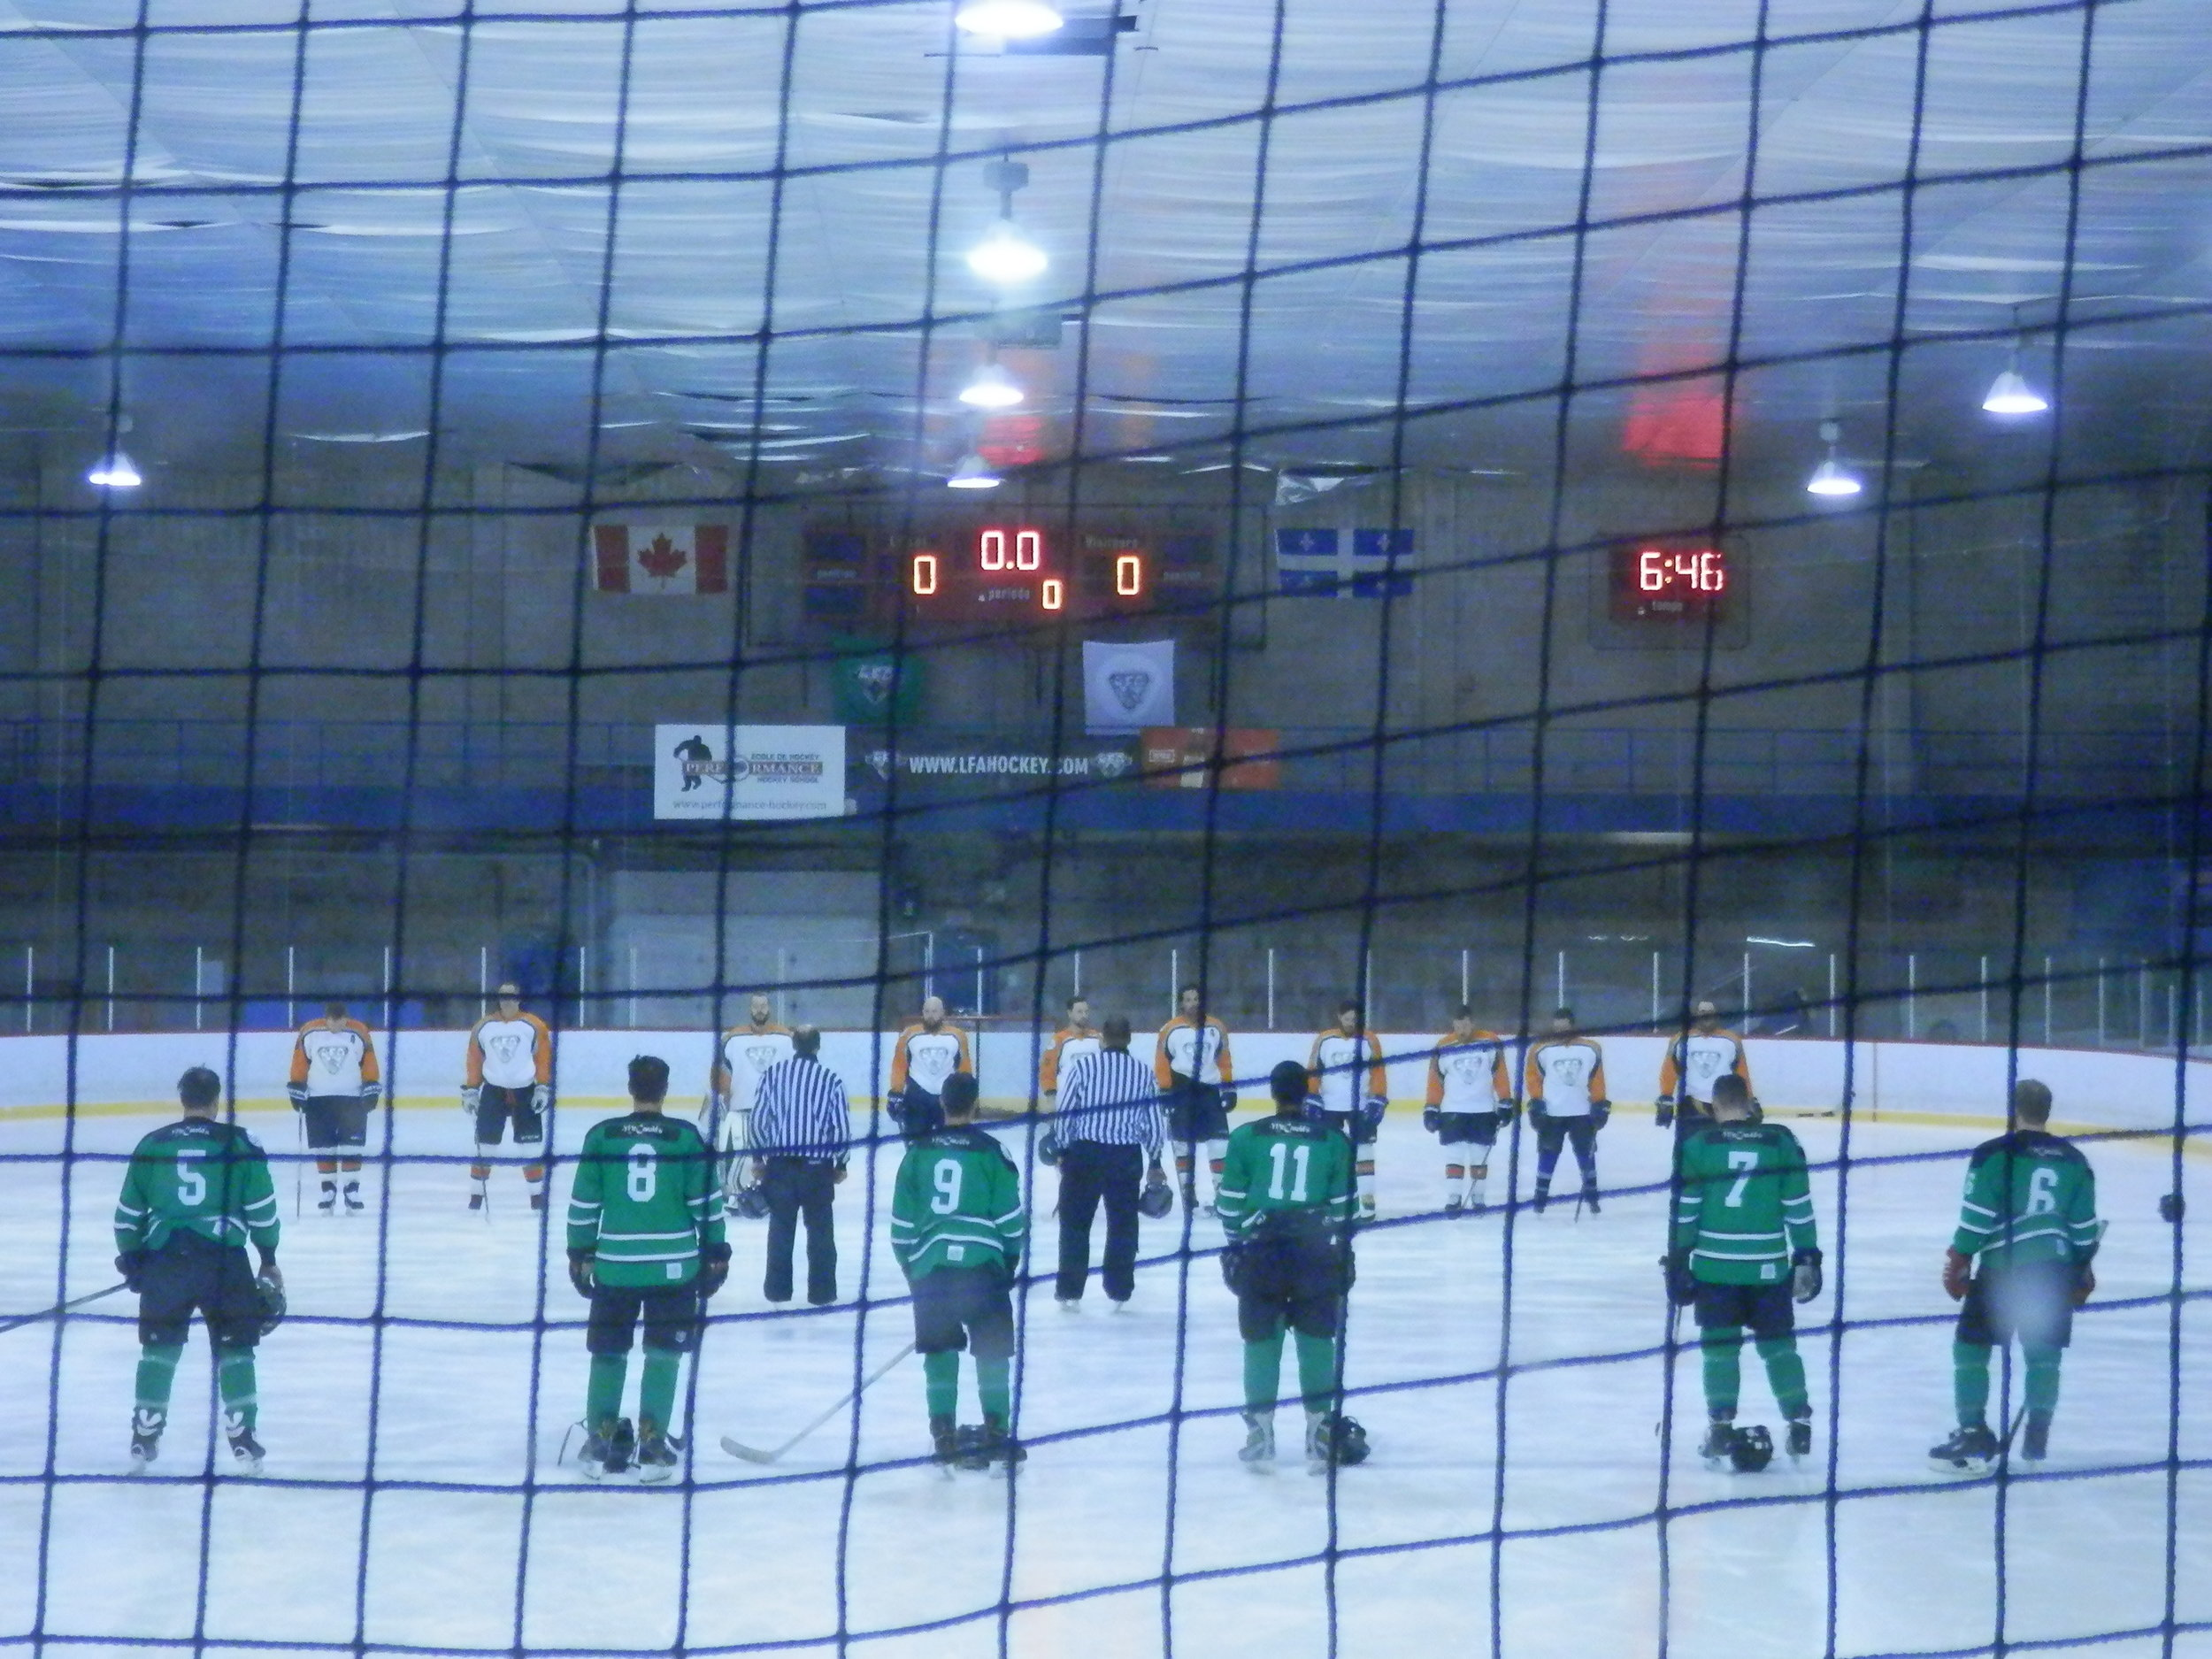 Players and officials removed their helmets prior to each game in honor of the Humboldt Broncos members who lost their lives in early April (photo jfd)